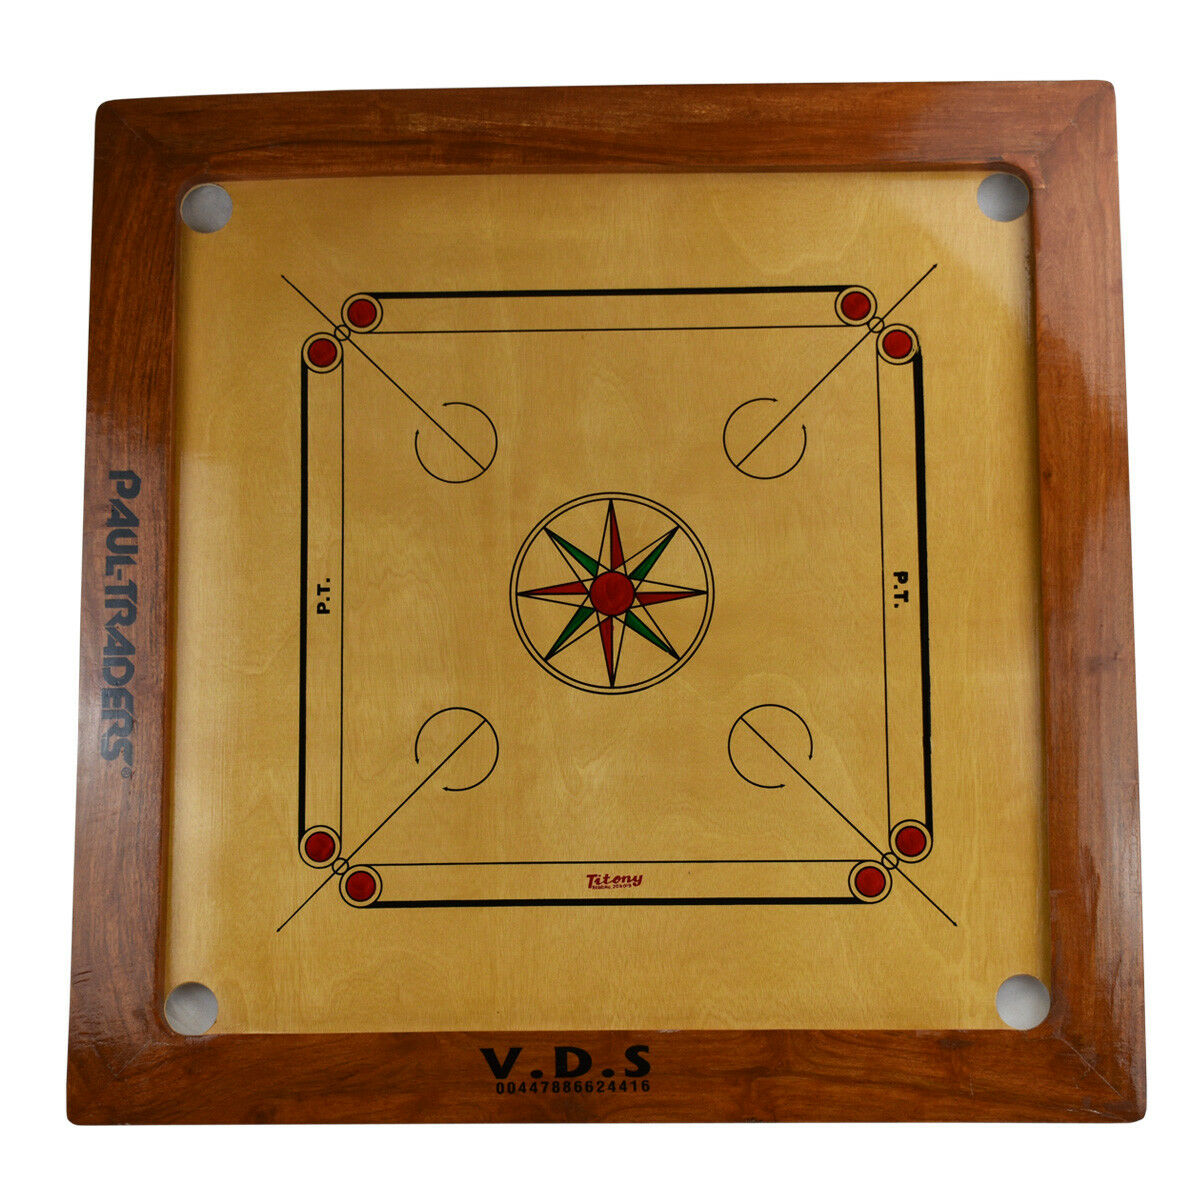 Carrom Board Game Set - Made in India - Great for Family Fun